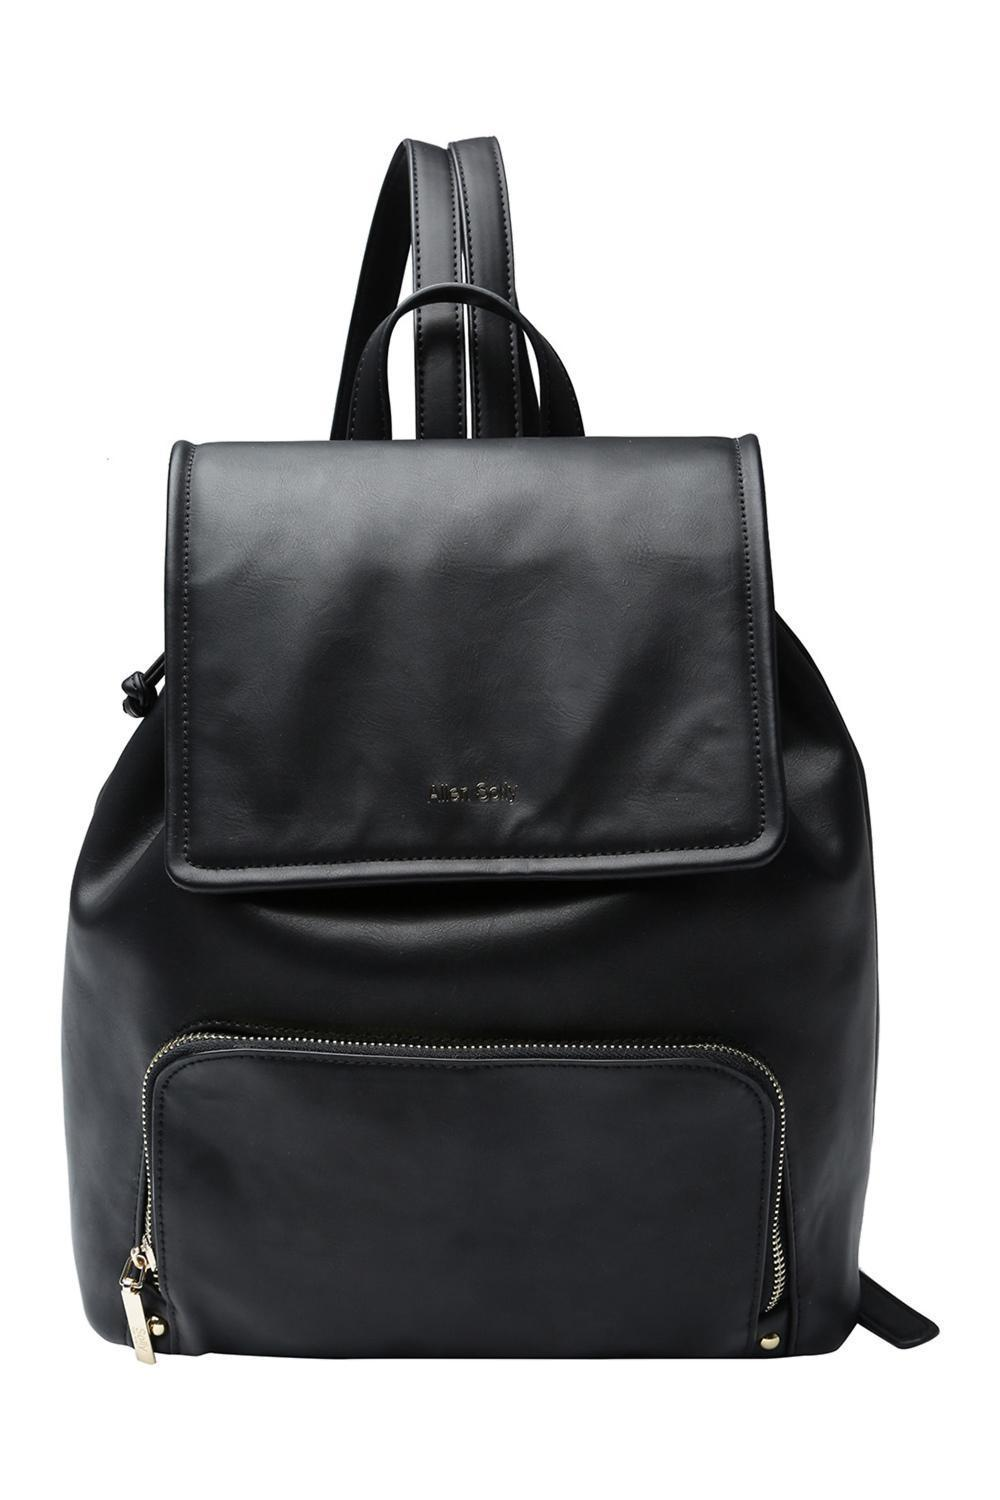 555fbcd83bf Solly Fashion Accessories, Allen Solly Black Backpack for Women at  Allensolly.com